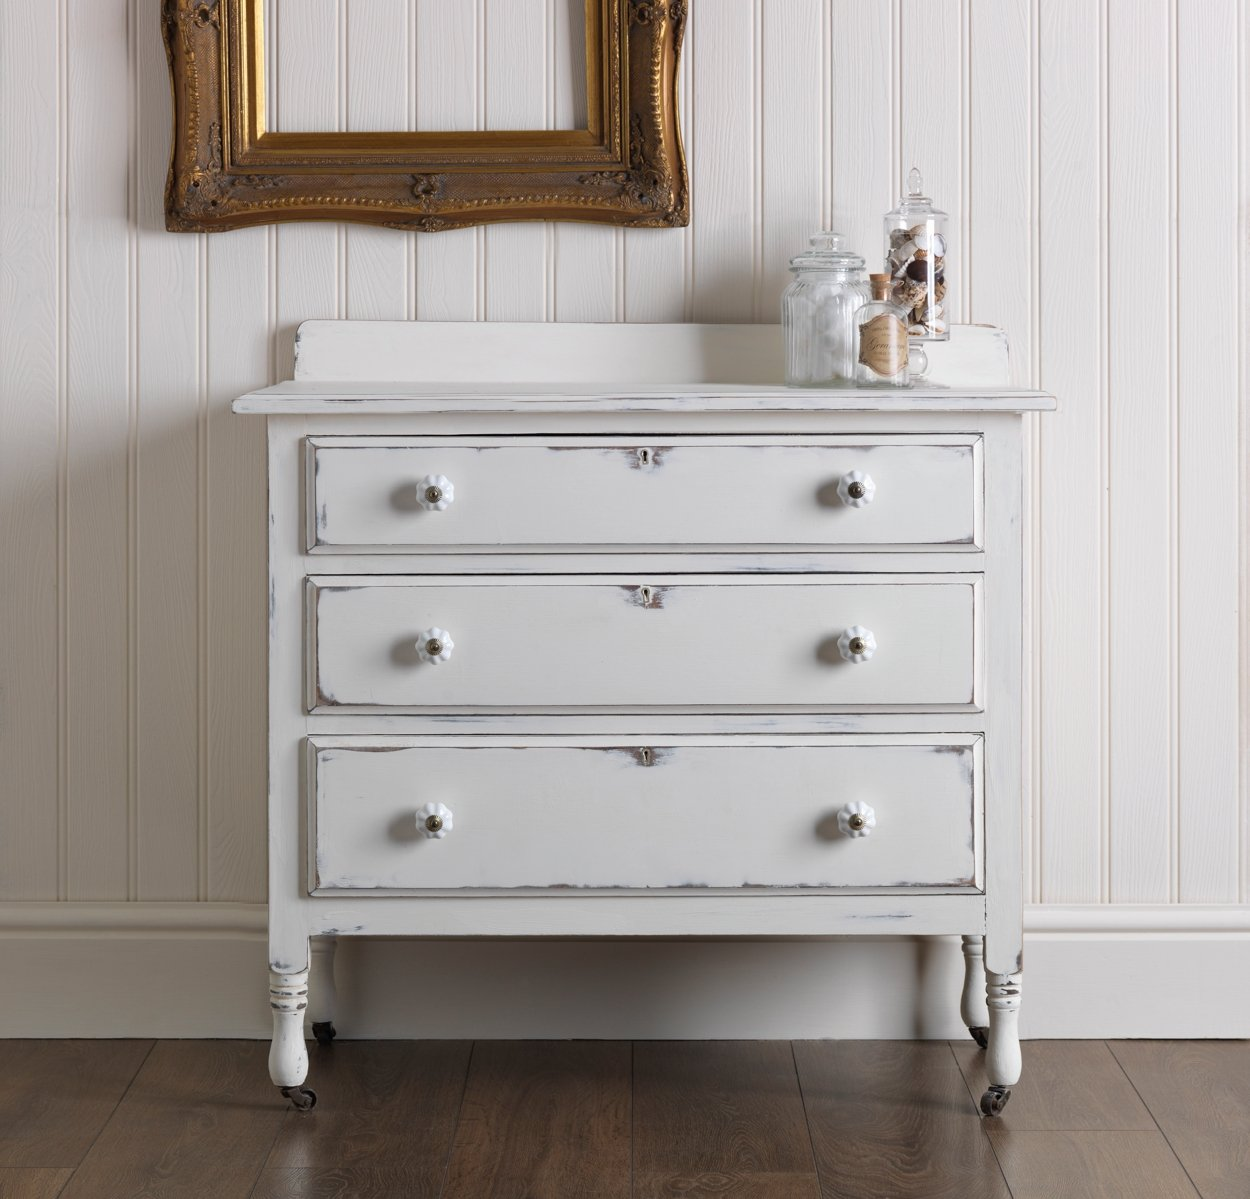 chalky paint - A Chalky Furniture Paint Makeover Woodie's